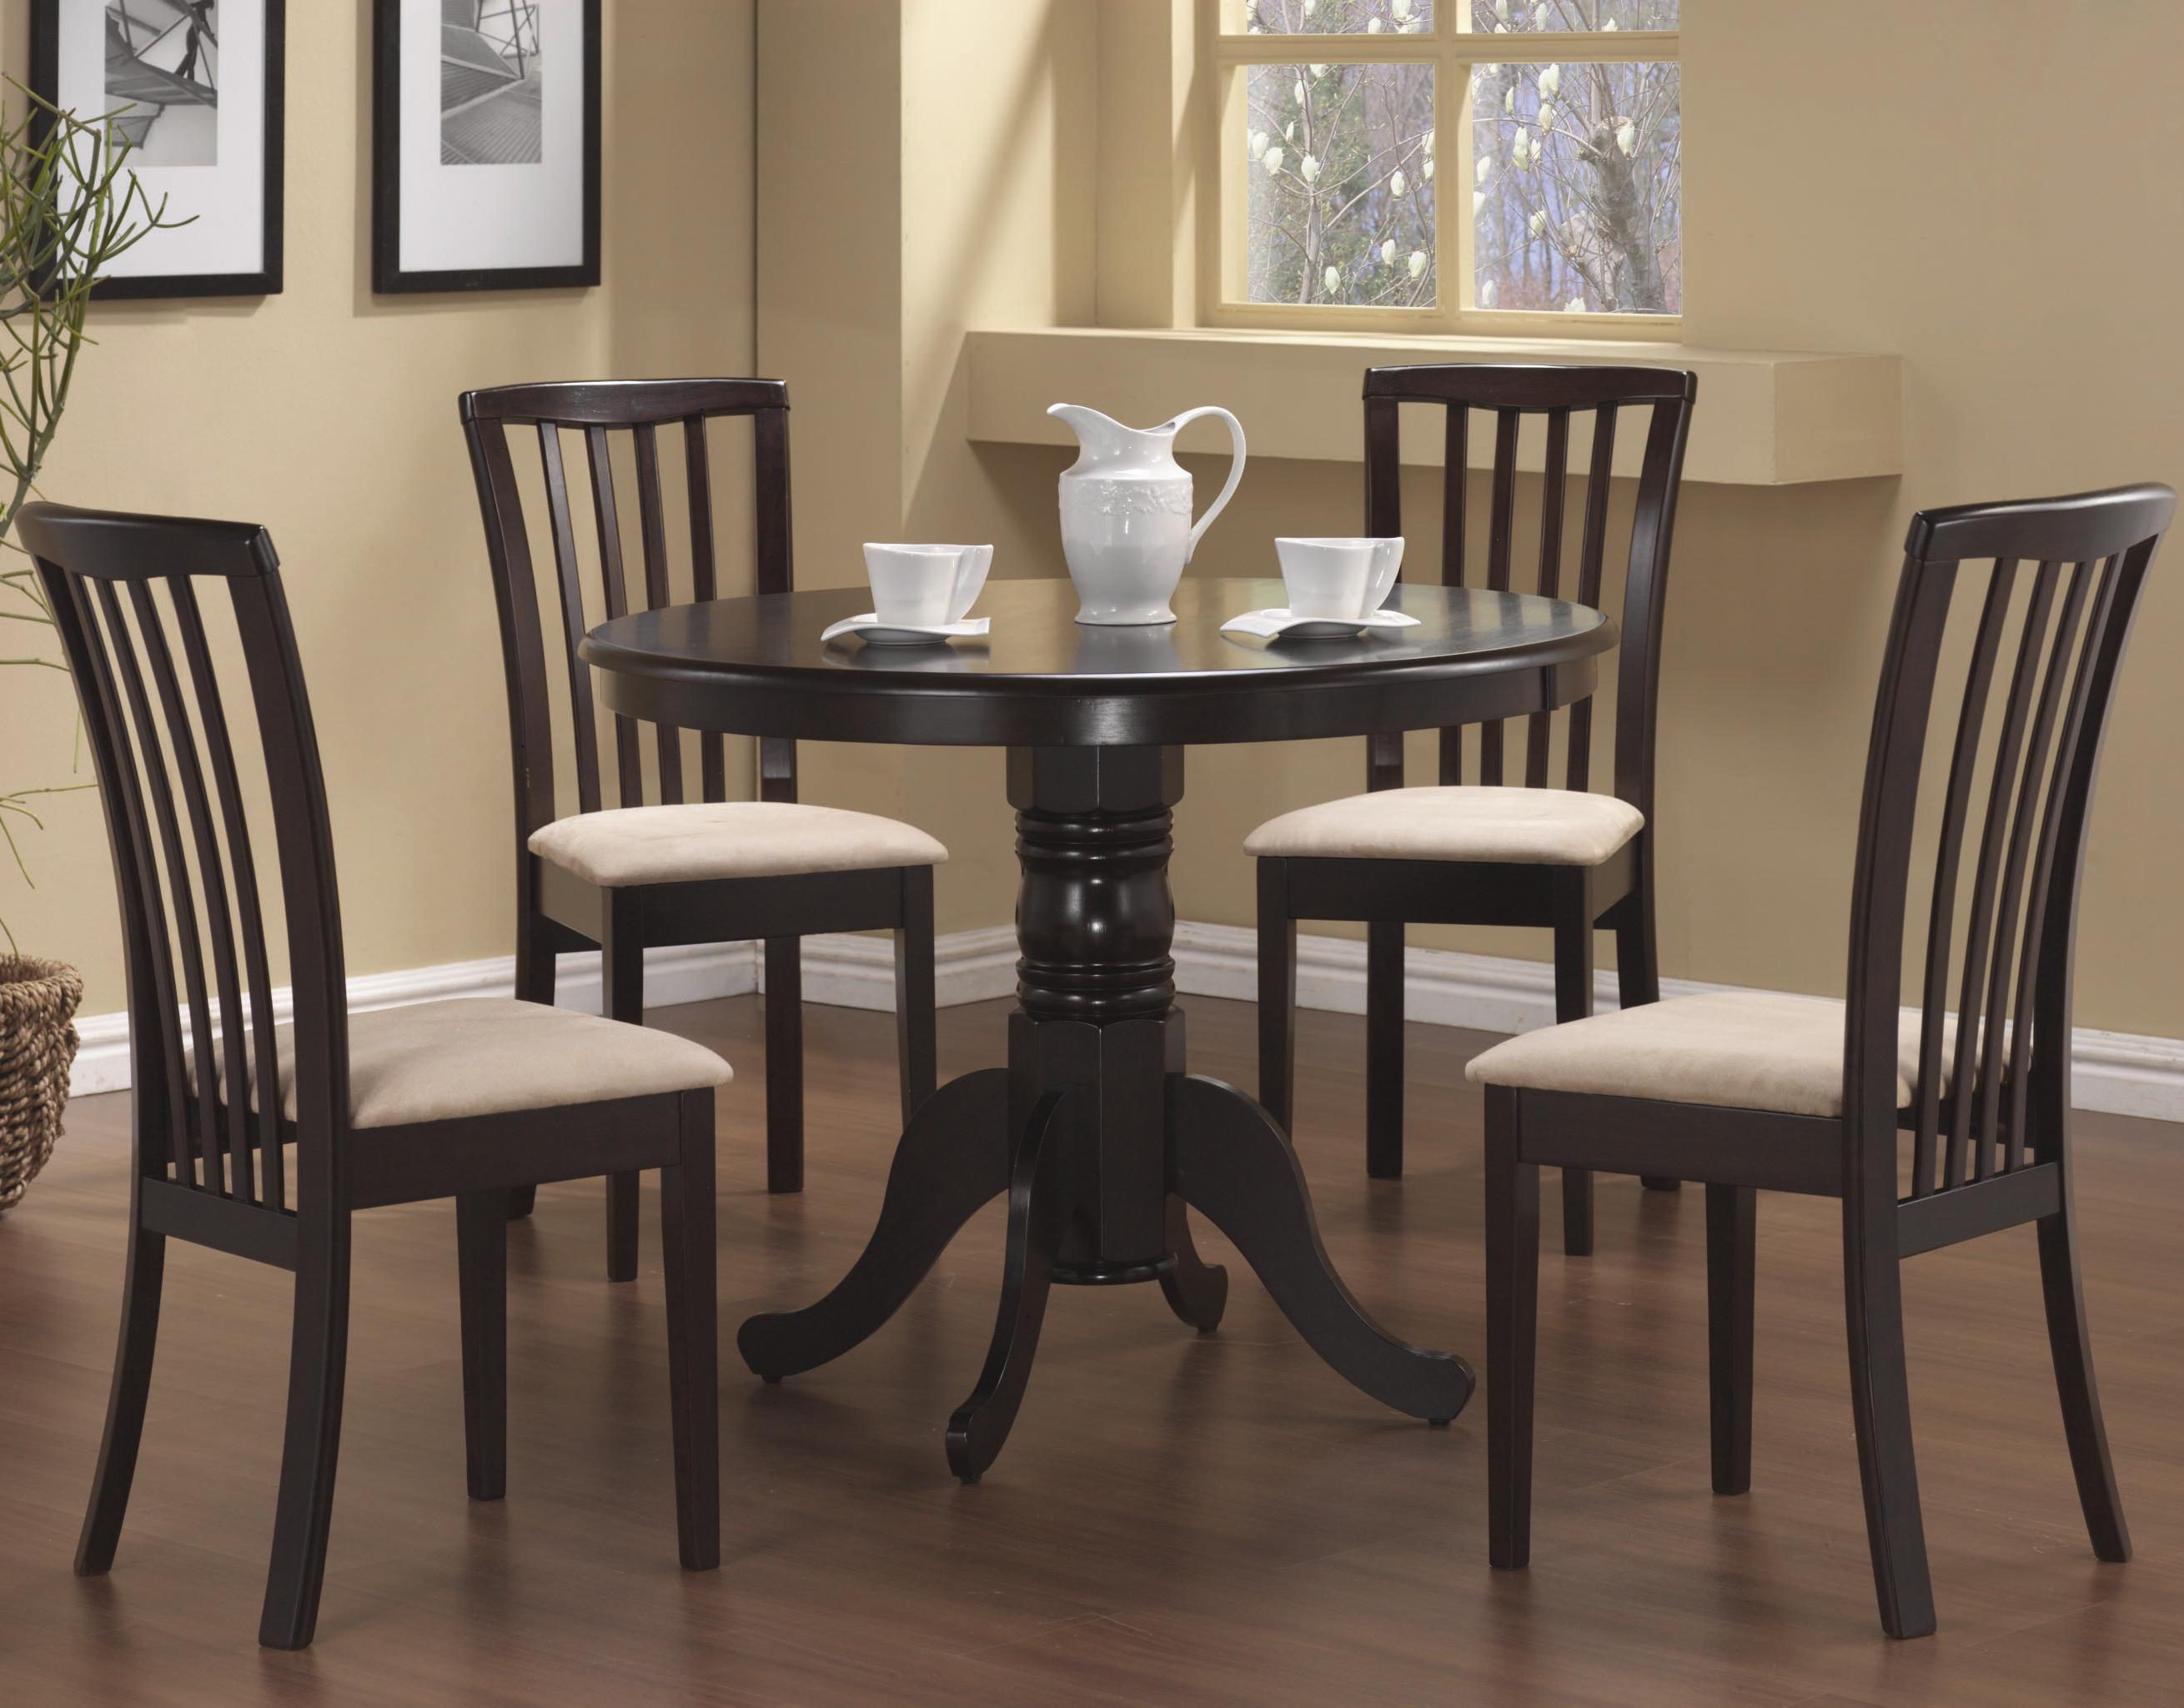 Coaster Brannan 5 Piece Dining Set   Item Number: 101081+4x2